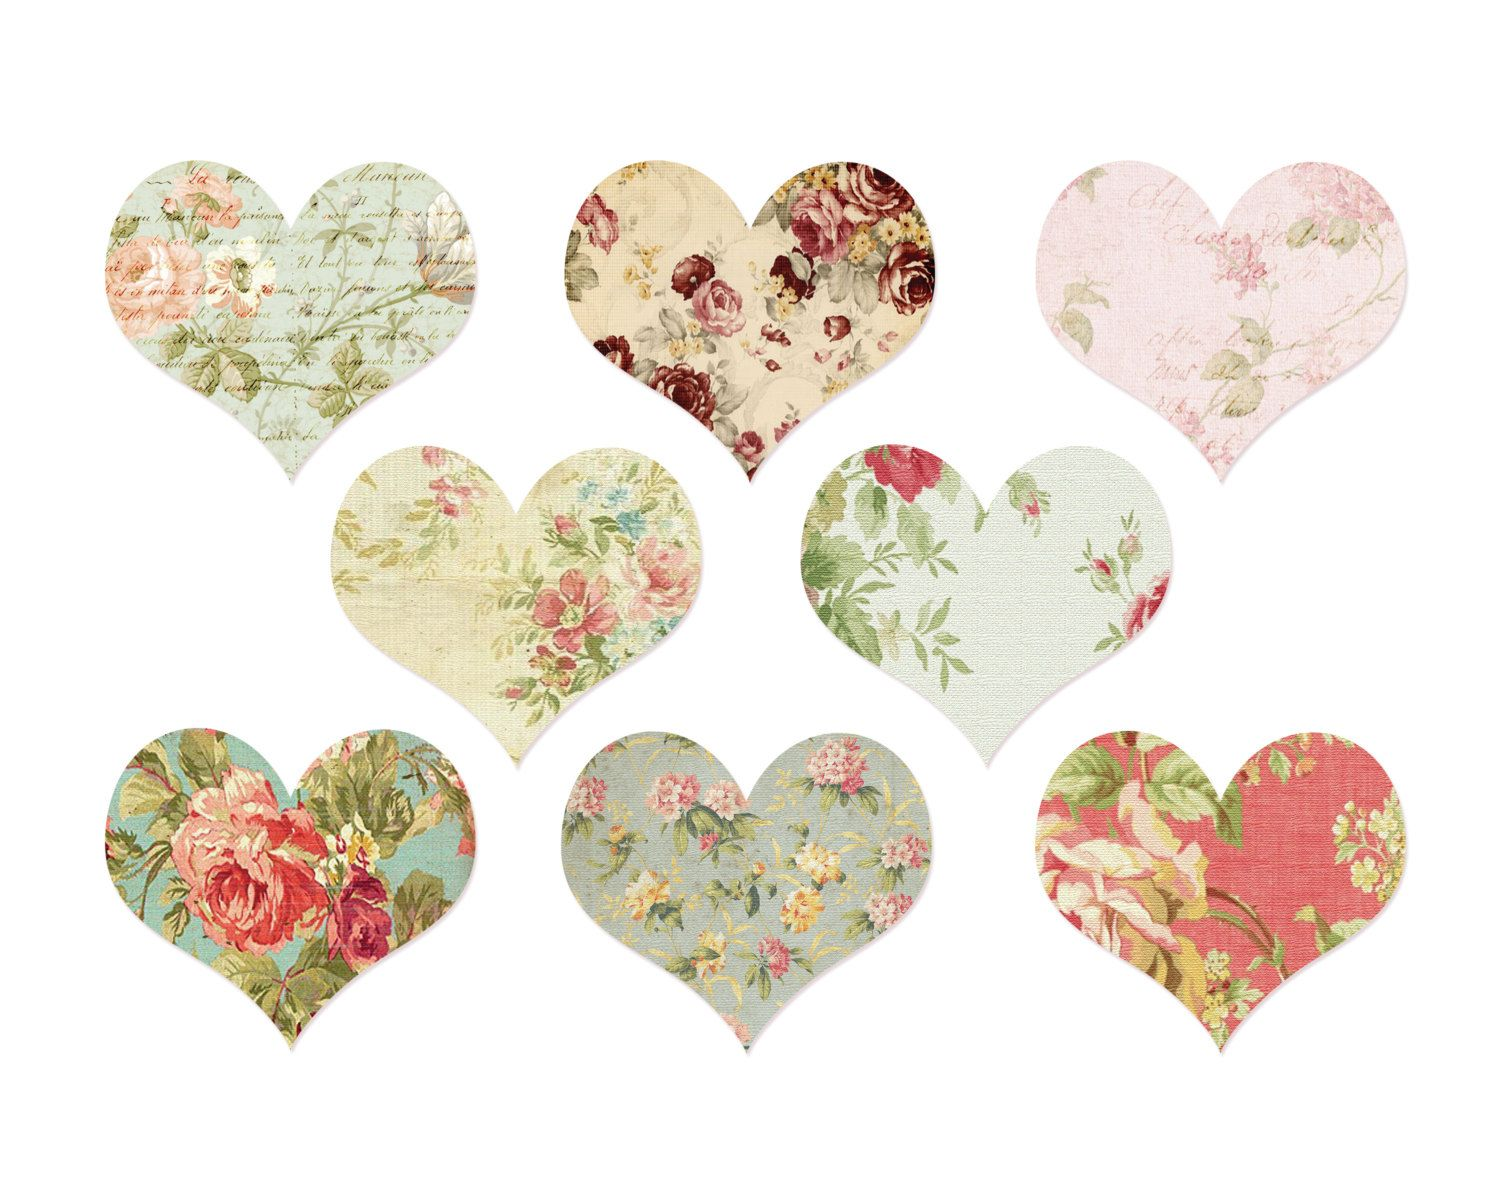 Vintage hearts clipart clip royalty free stock Clipart Digital Heart Clipart Clip Art By ... clip royalty free stock